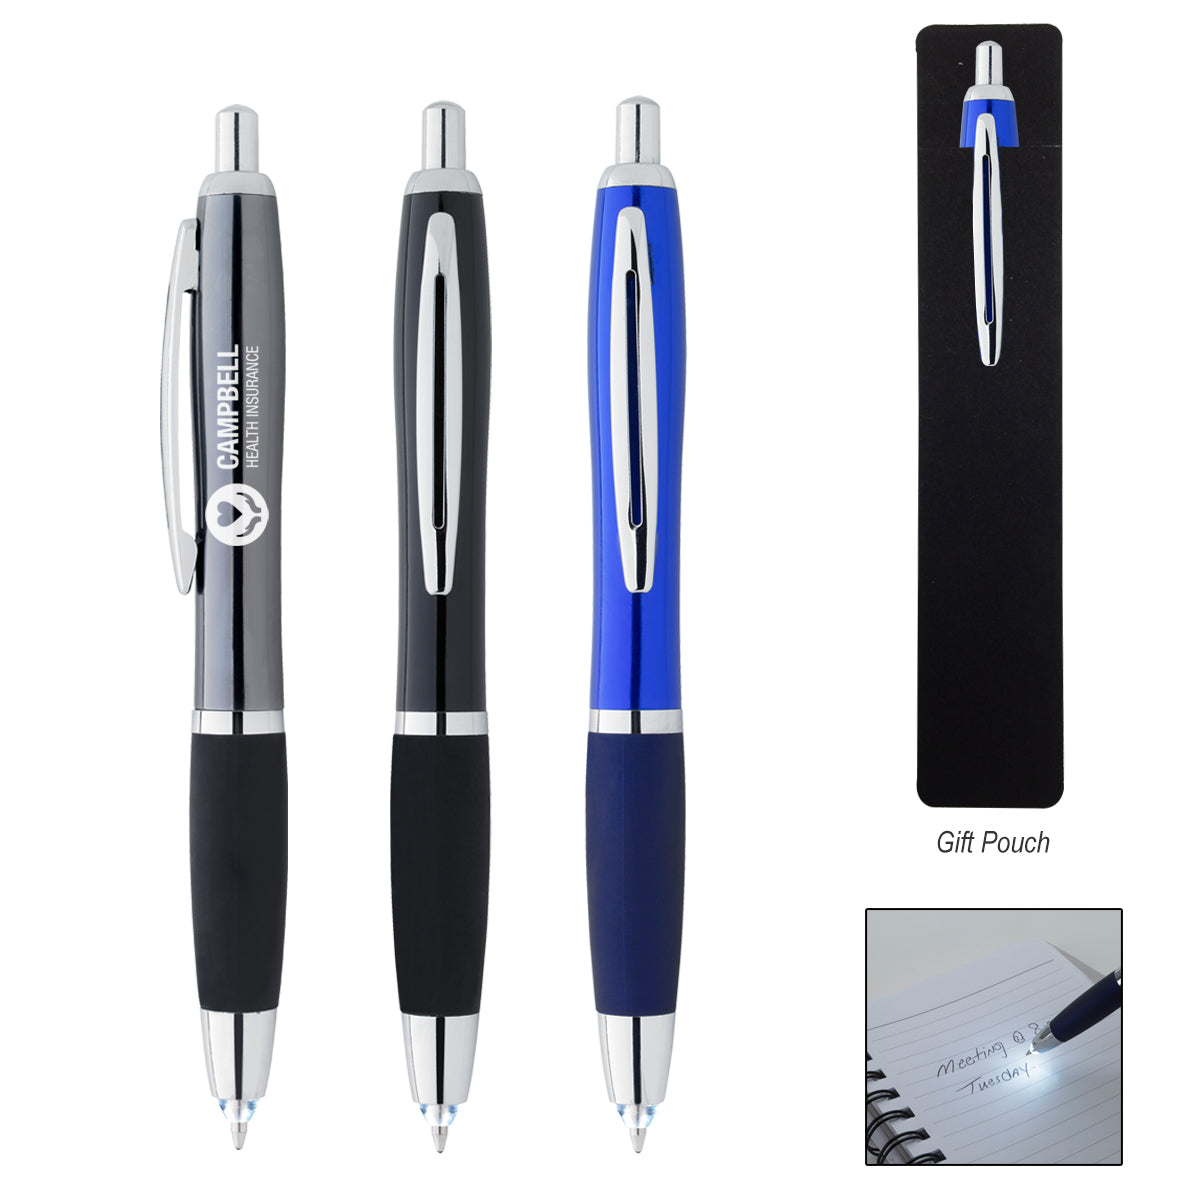 Retractable Pen with LED Light